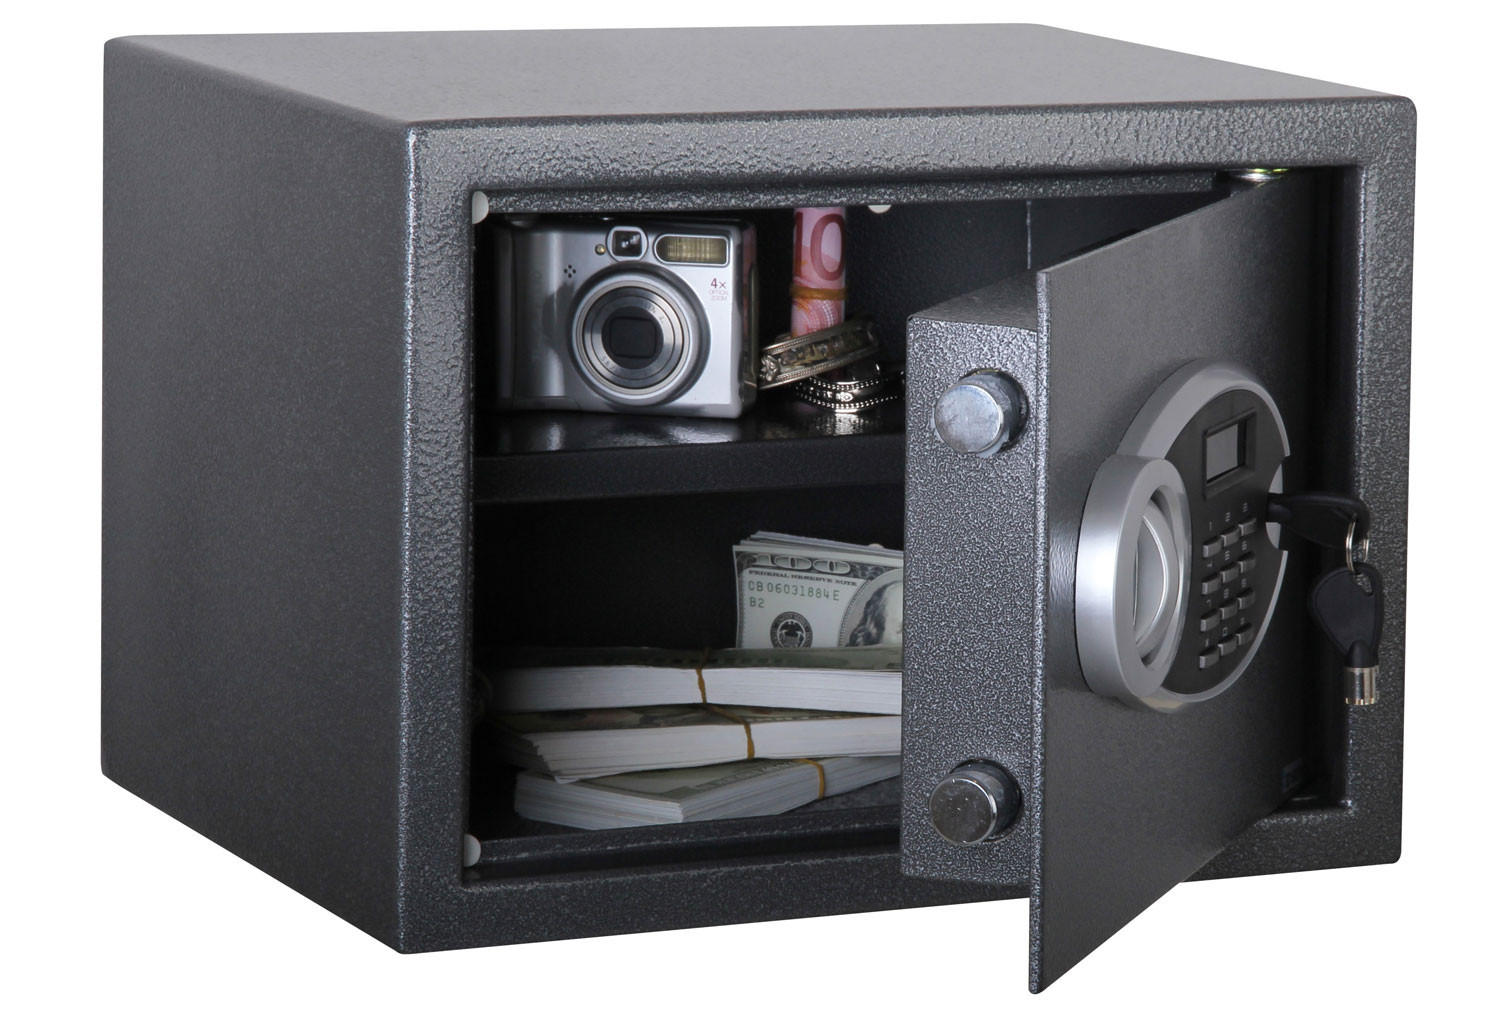 Phoenix Rhea SS0102E Home Office Safe With Electronic Lock (17ltrs)